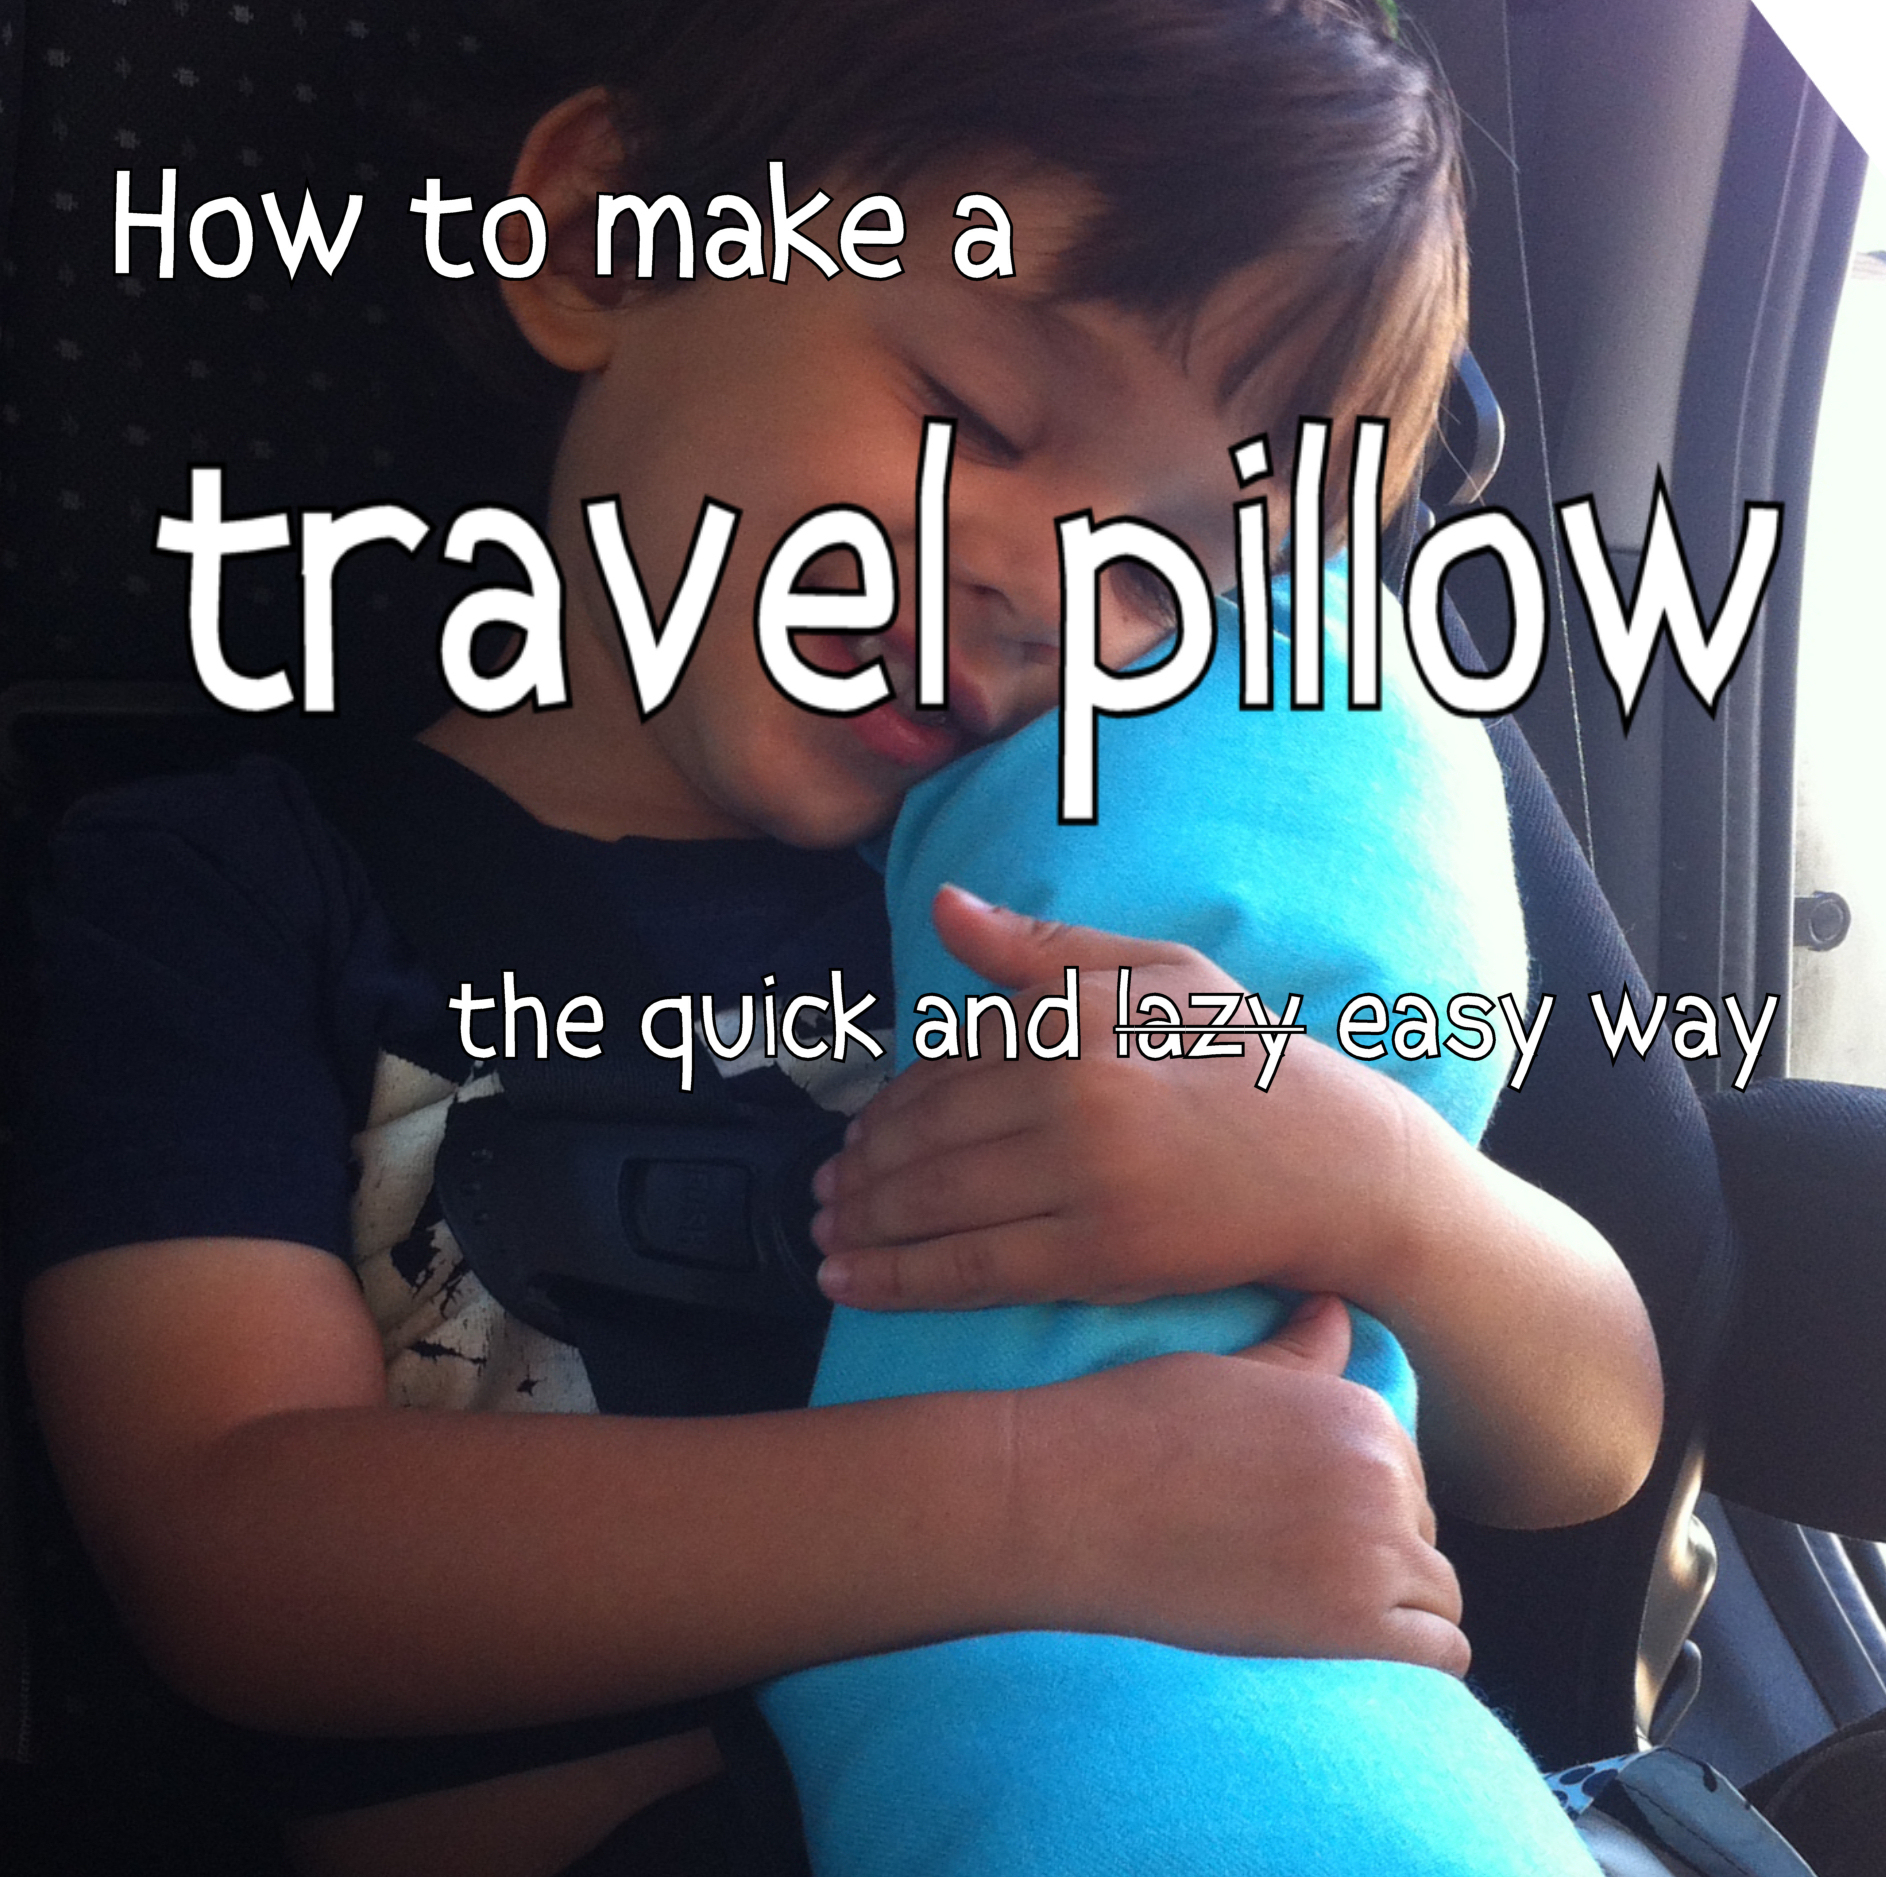 how to make a travel pillow